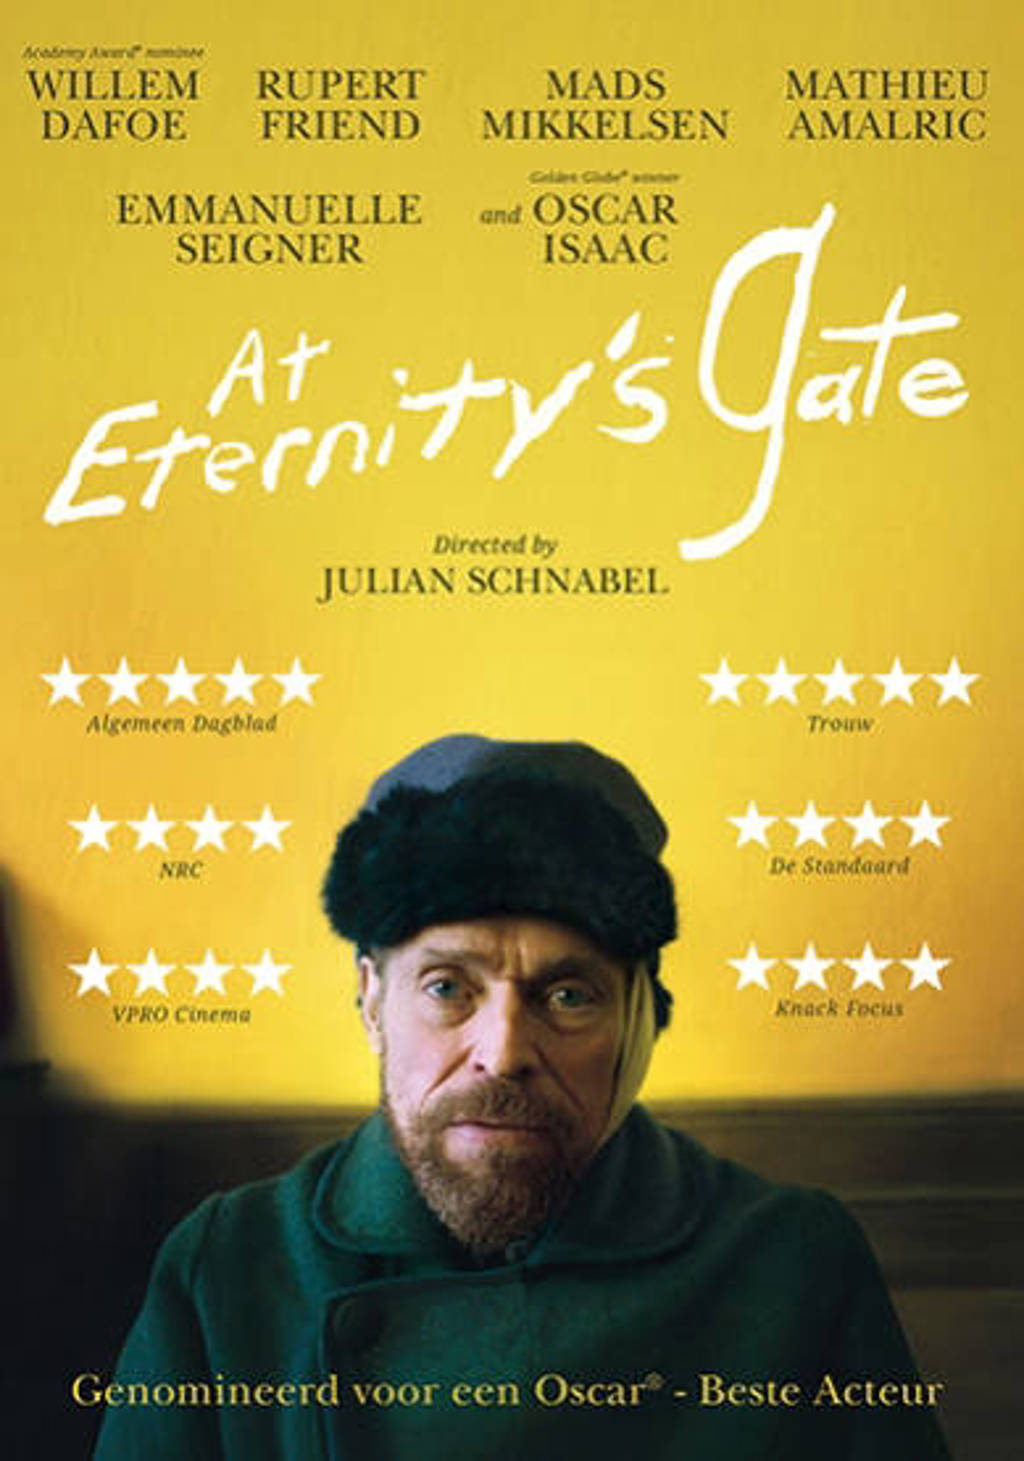 At eternity's gate (DVD)